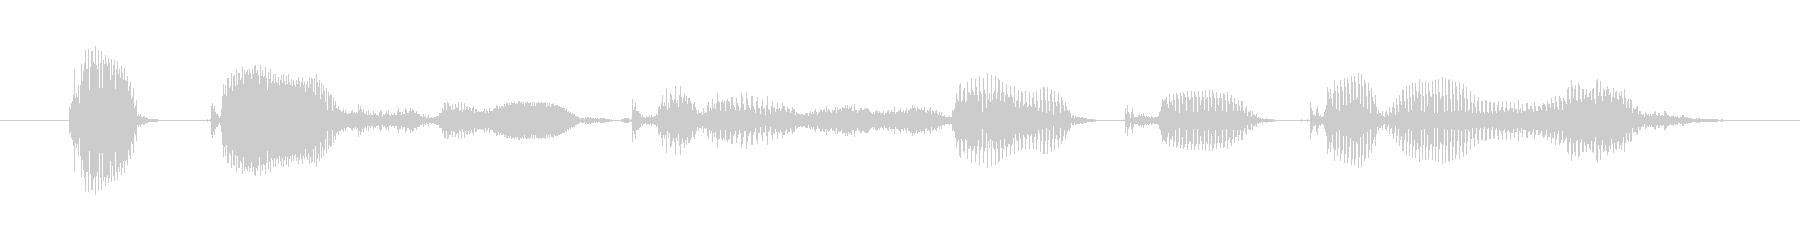 I heard that from my dad (female)'s unreproduced waveform